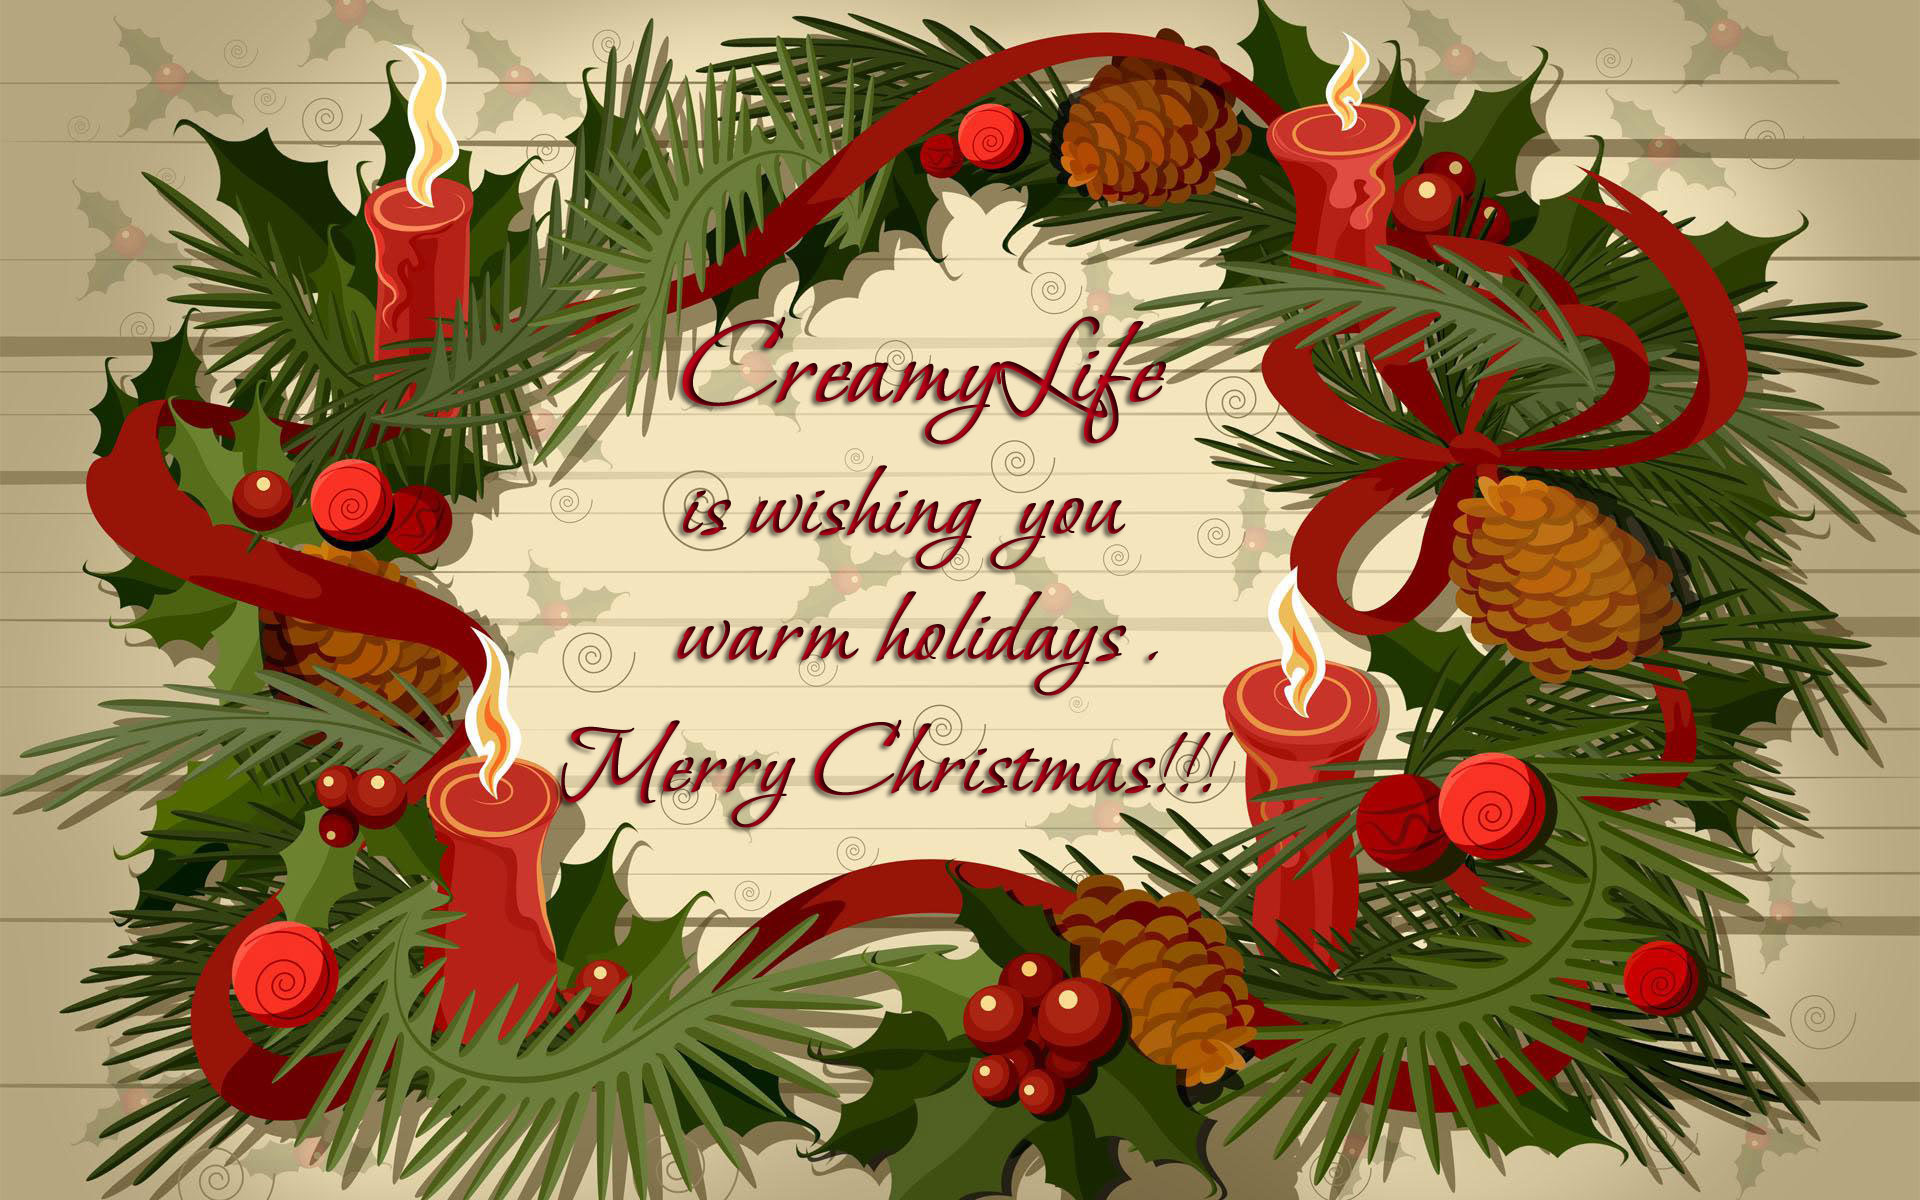 Christmas Card Greetings Pictures Poetry Wishes wallpapers | Donpk